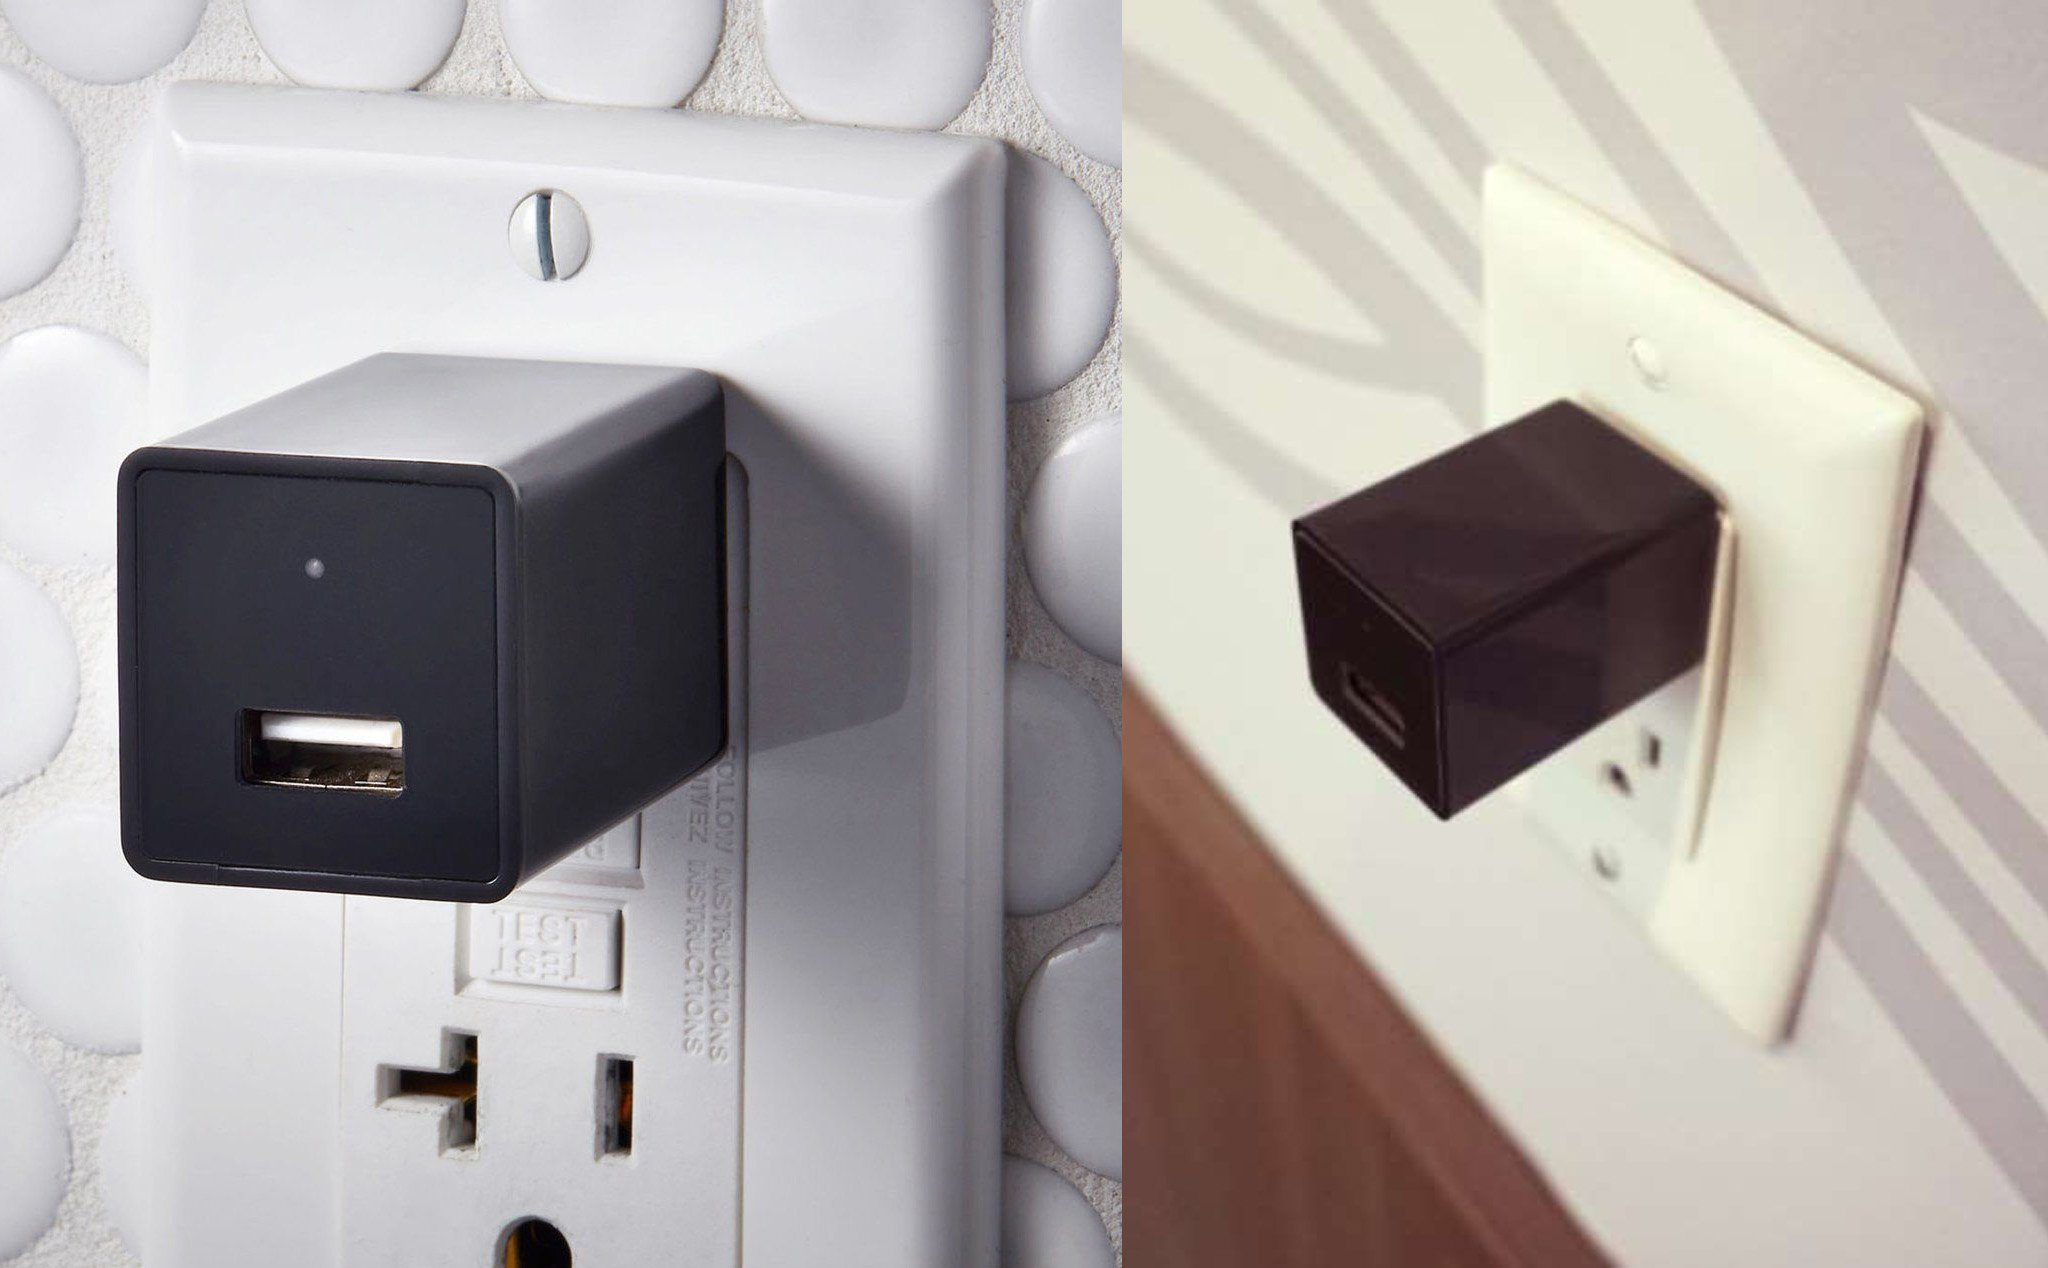 HD Mask USB Camera: It is both a phone charger and a security camera